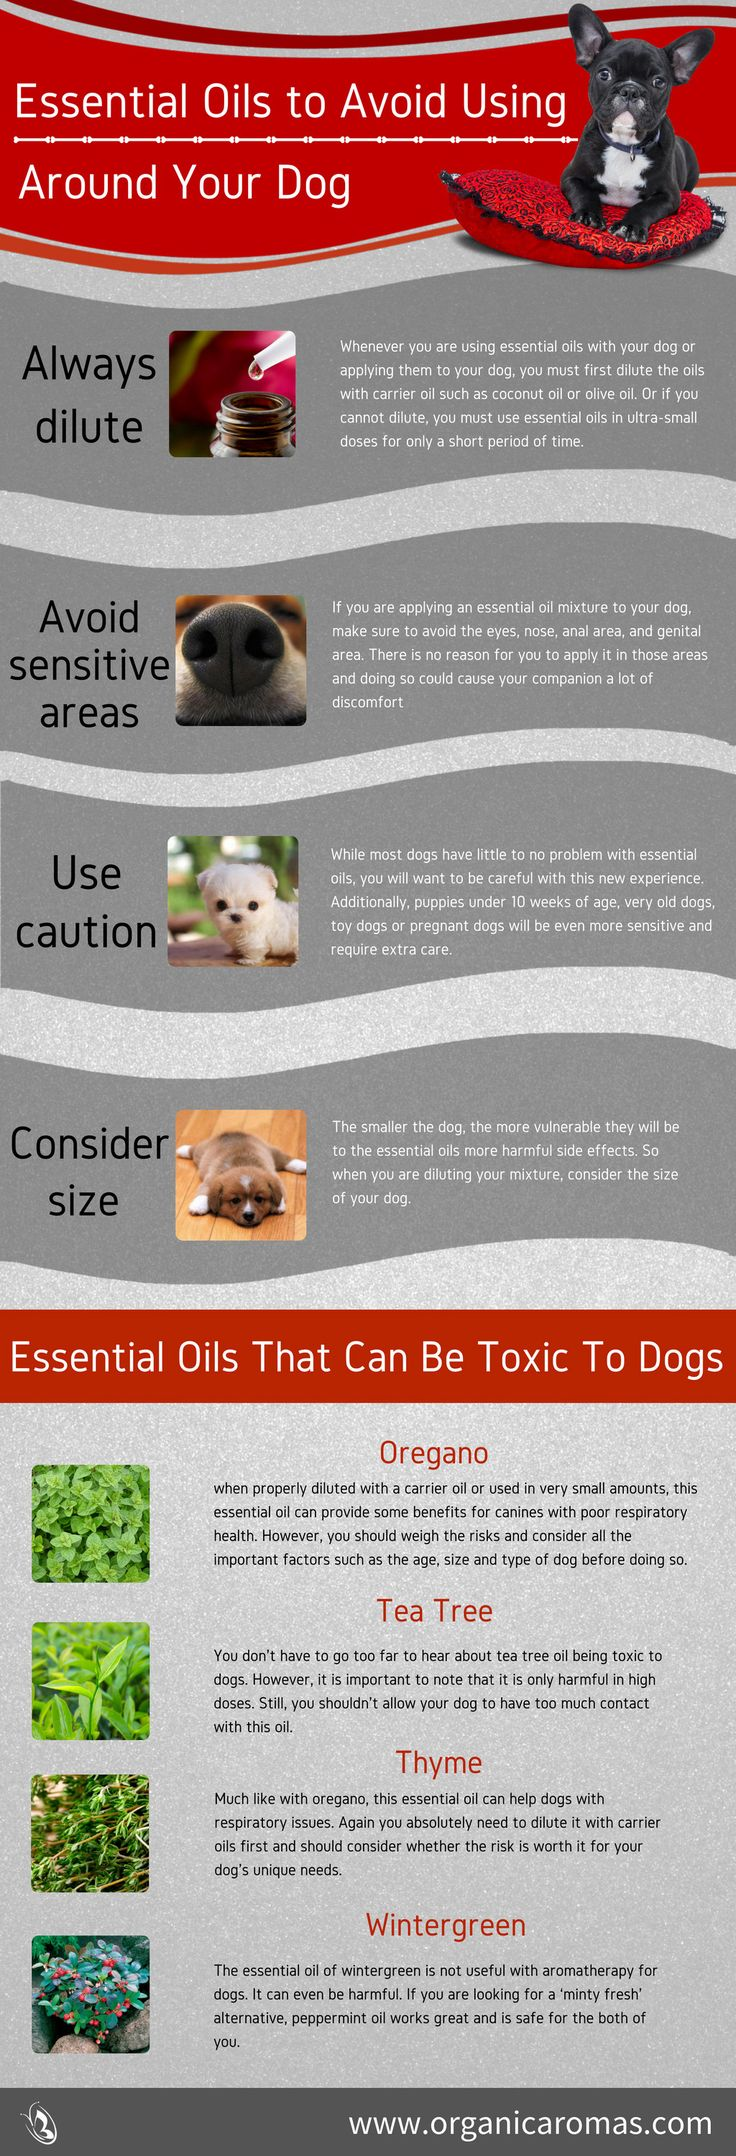 Essential Oils to Avoid around Your Dog Info-graphic. Learn what oils can be harmful around your fur babies and what areas to avoid for their benefit.